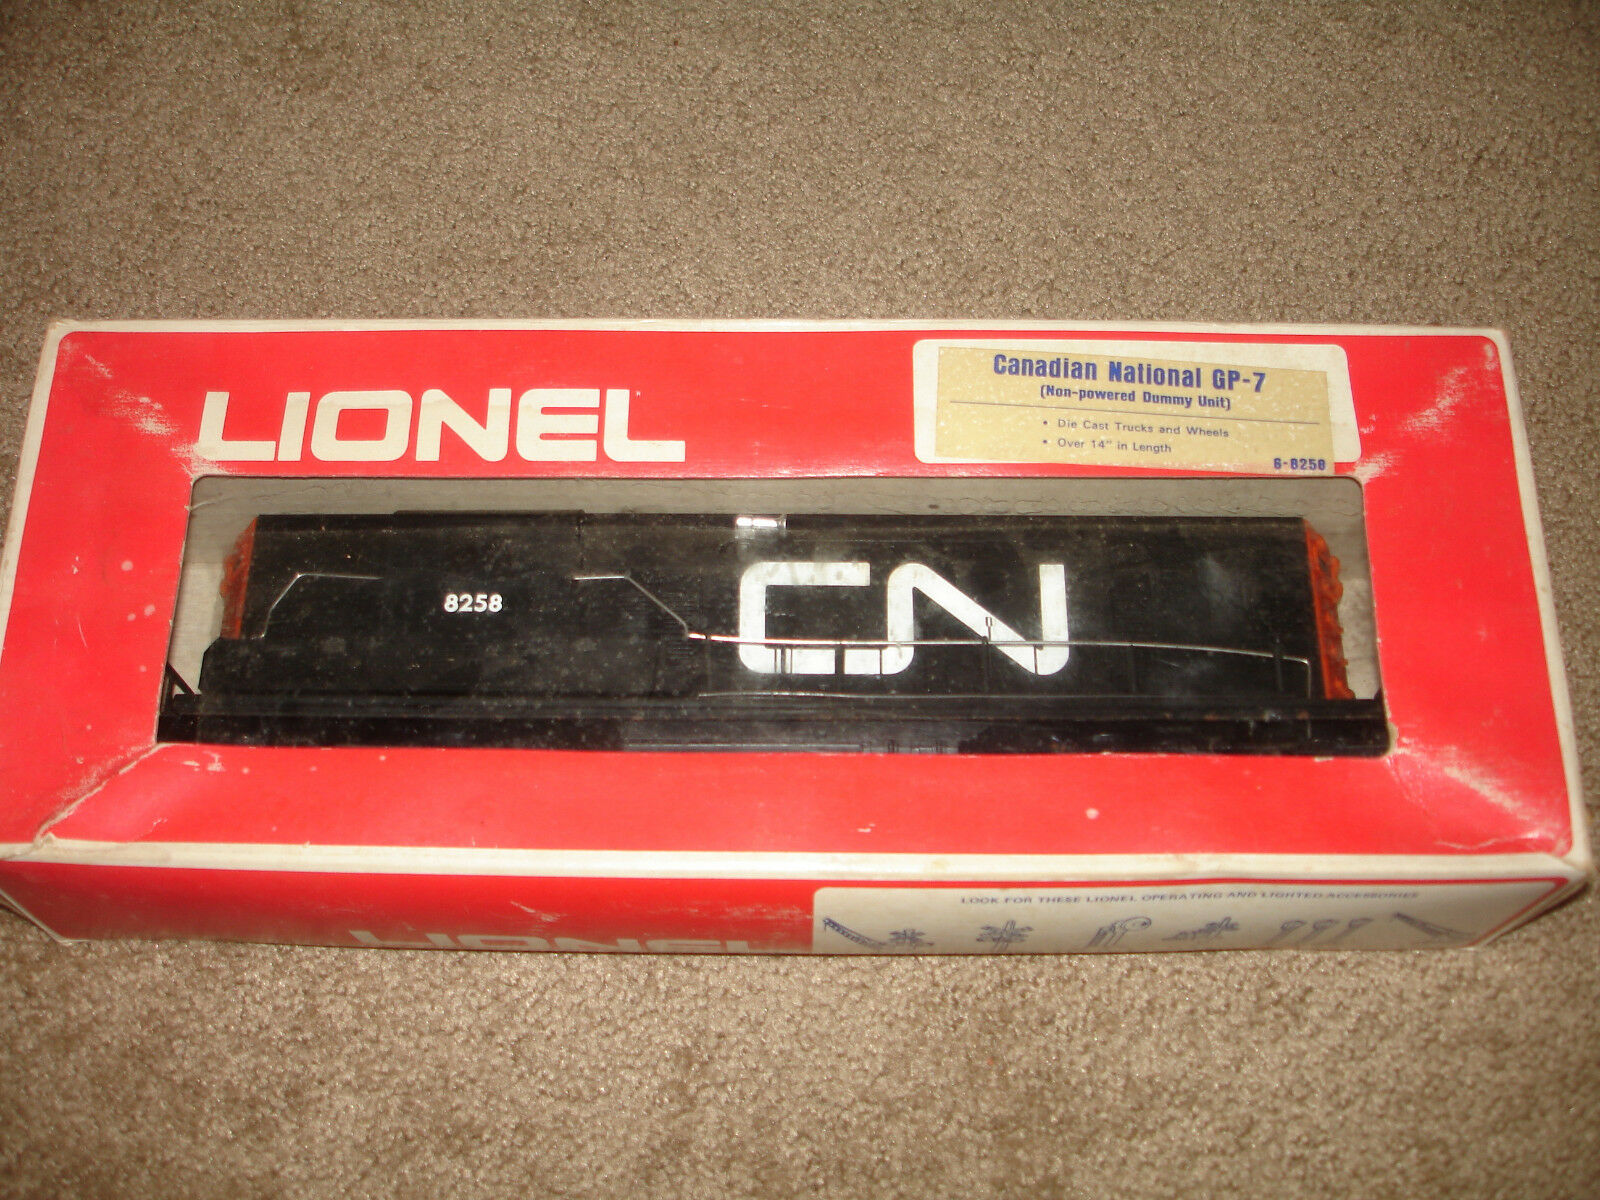 Lionel CN 8258  Train Dummy Engine and CN 9161 Caboose